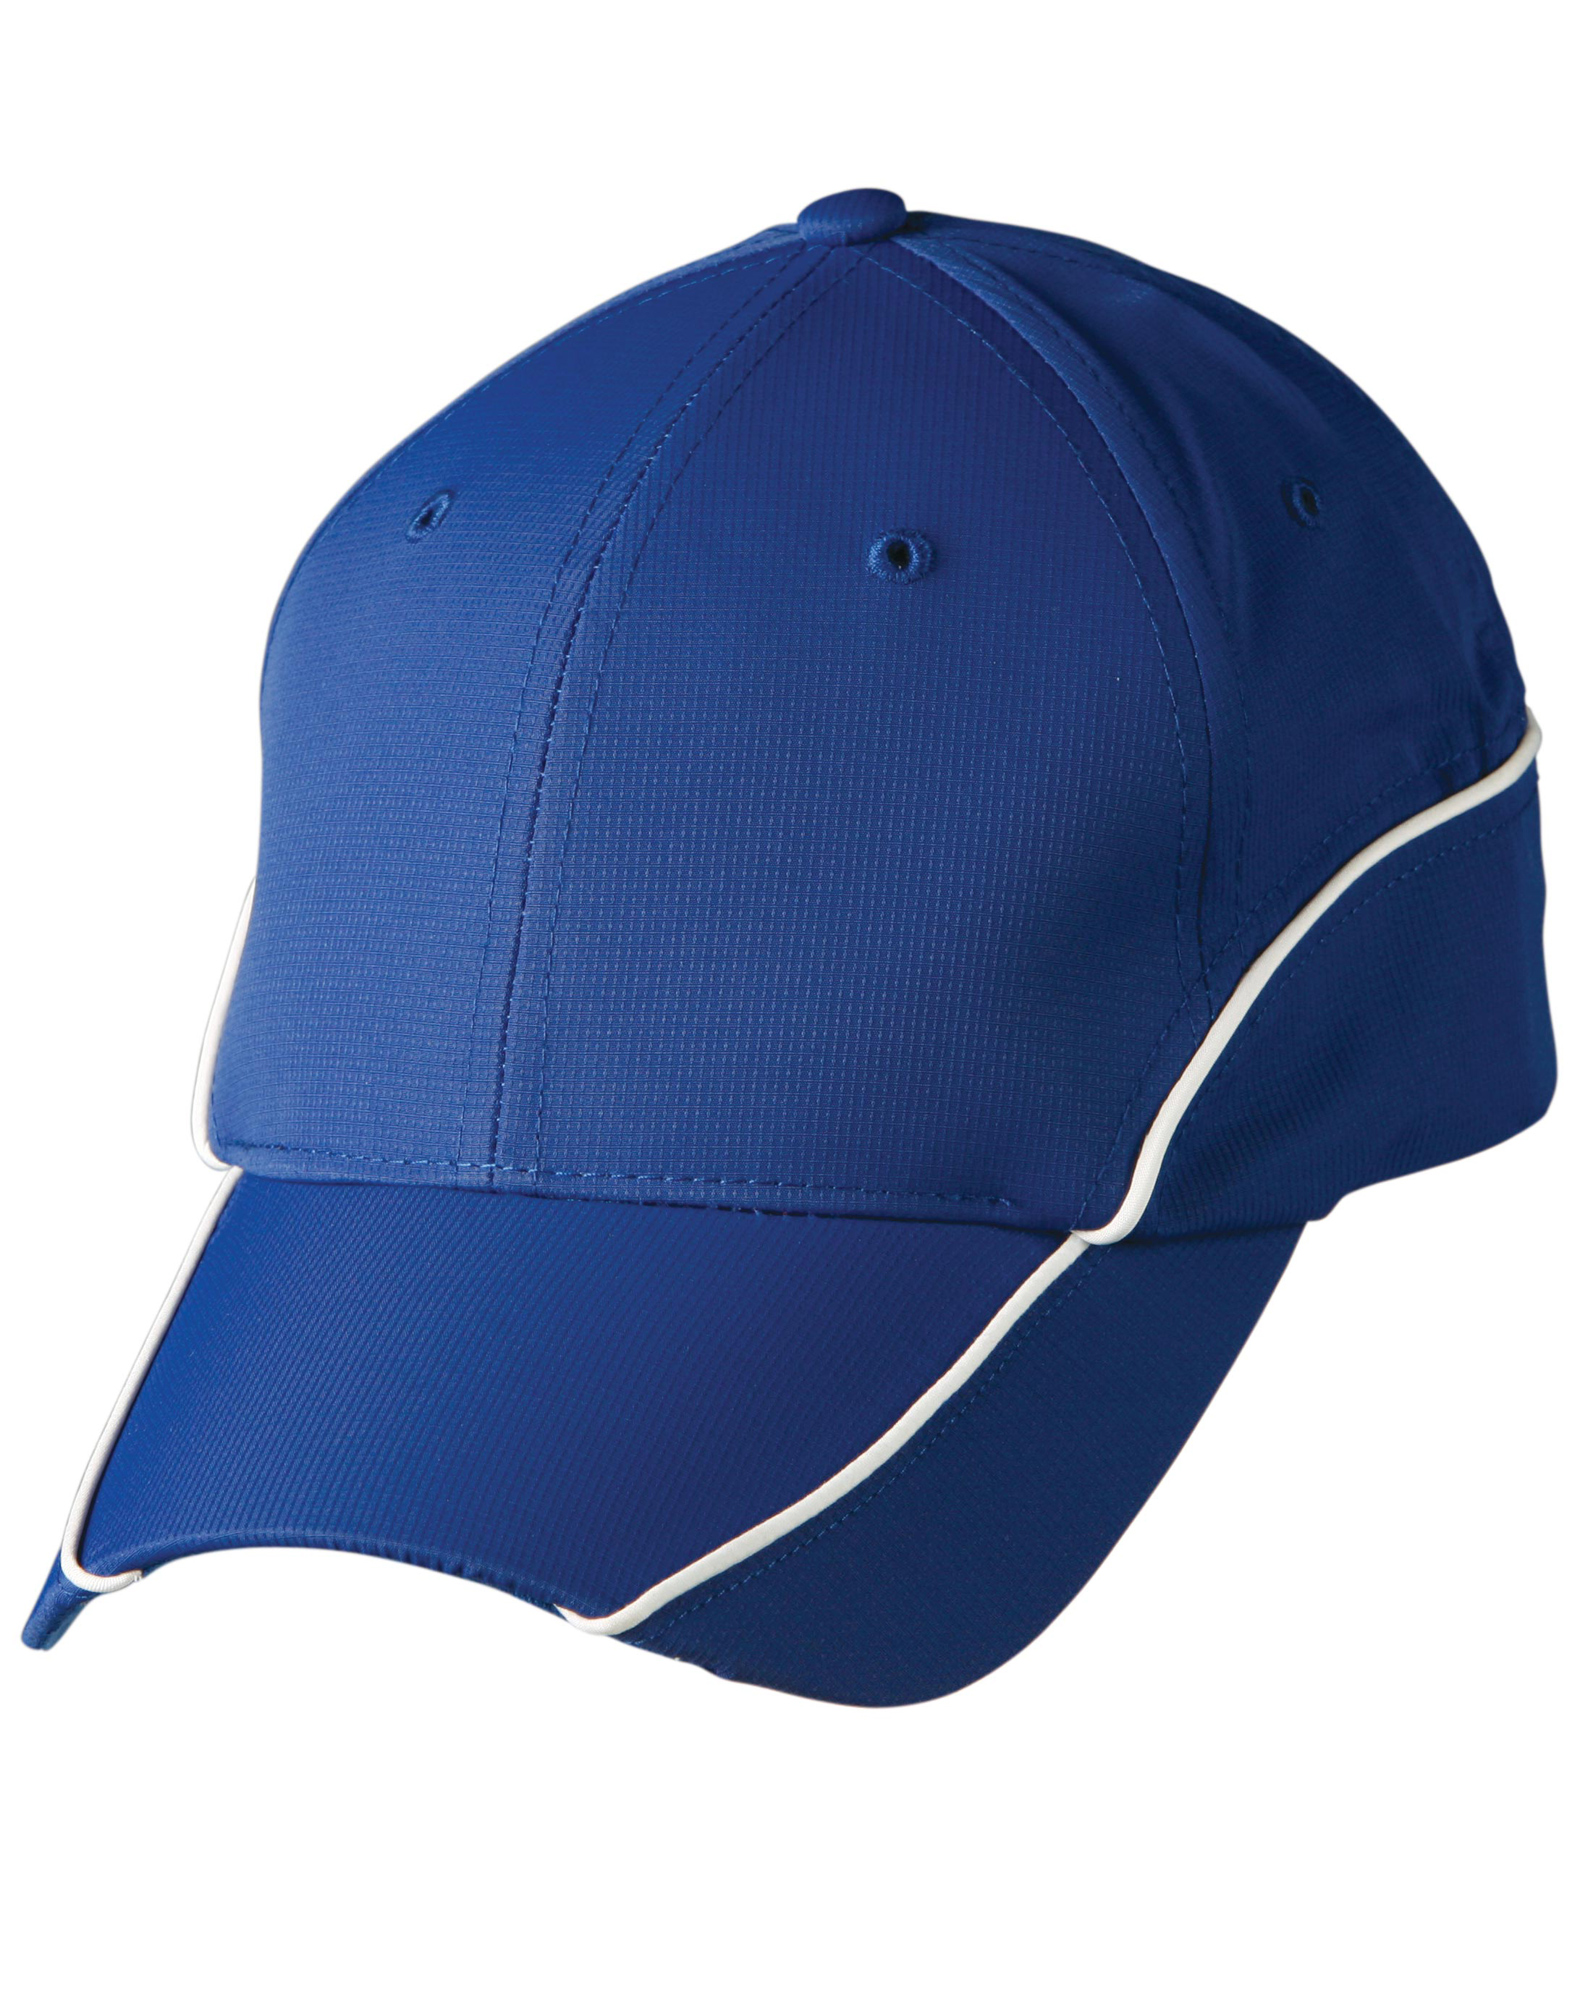 e9303a9bff6 Ripstop Peak Cap With Polyester Mesh Lining